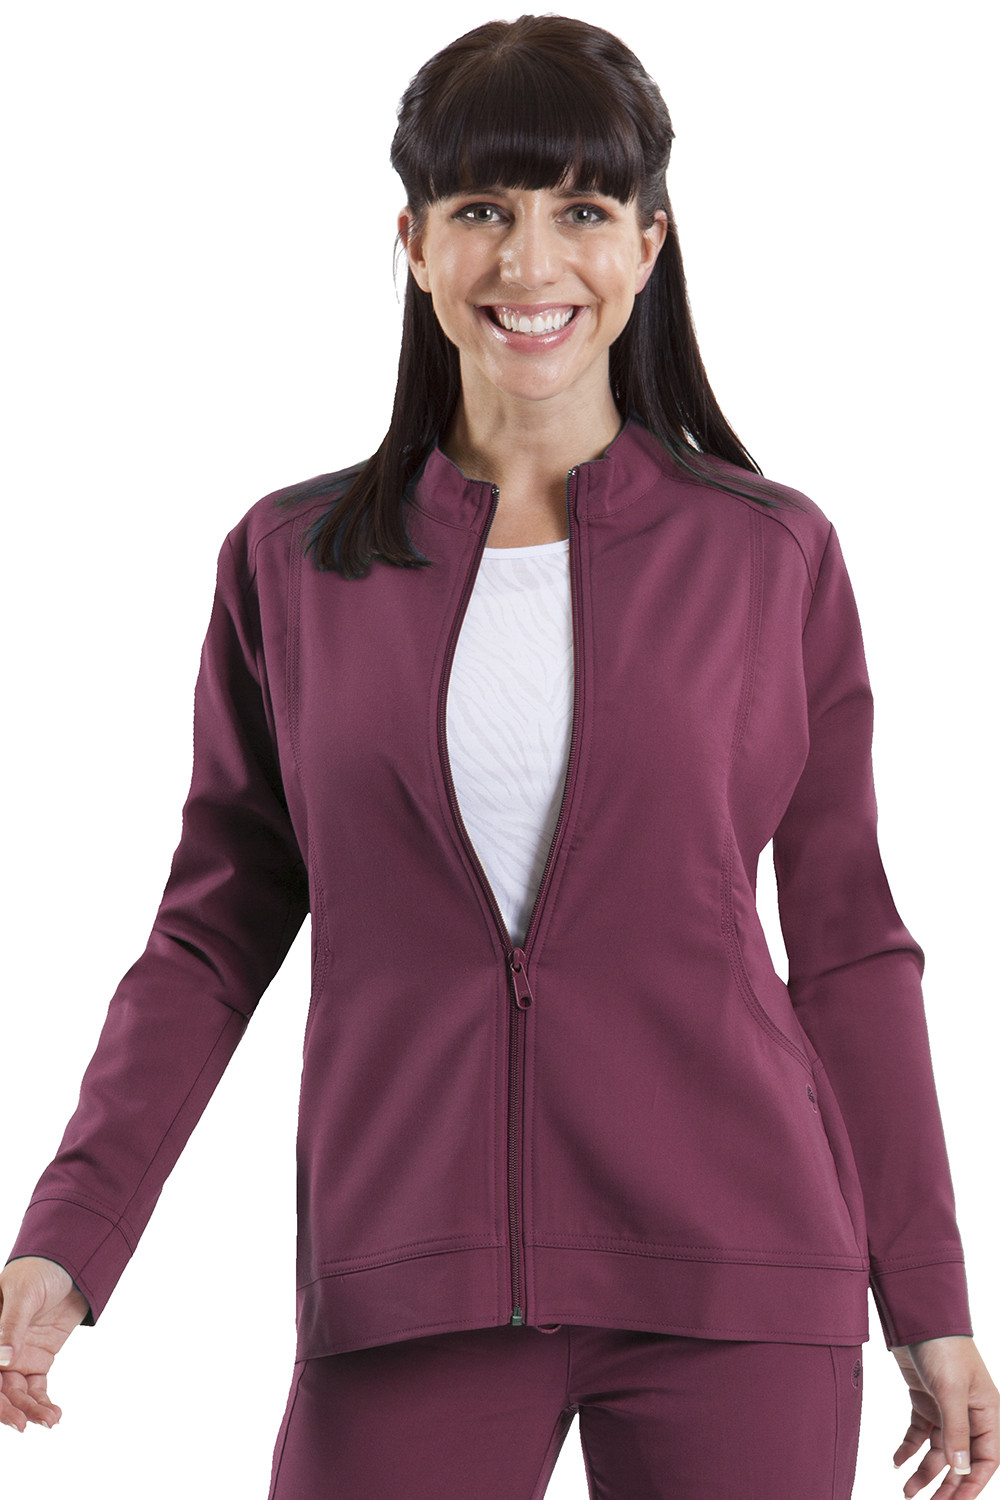 hospital medical scrub jackets